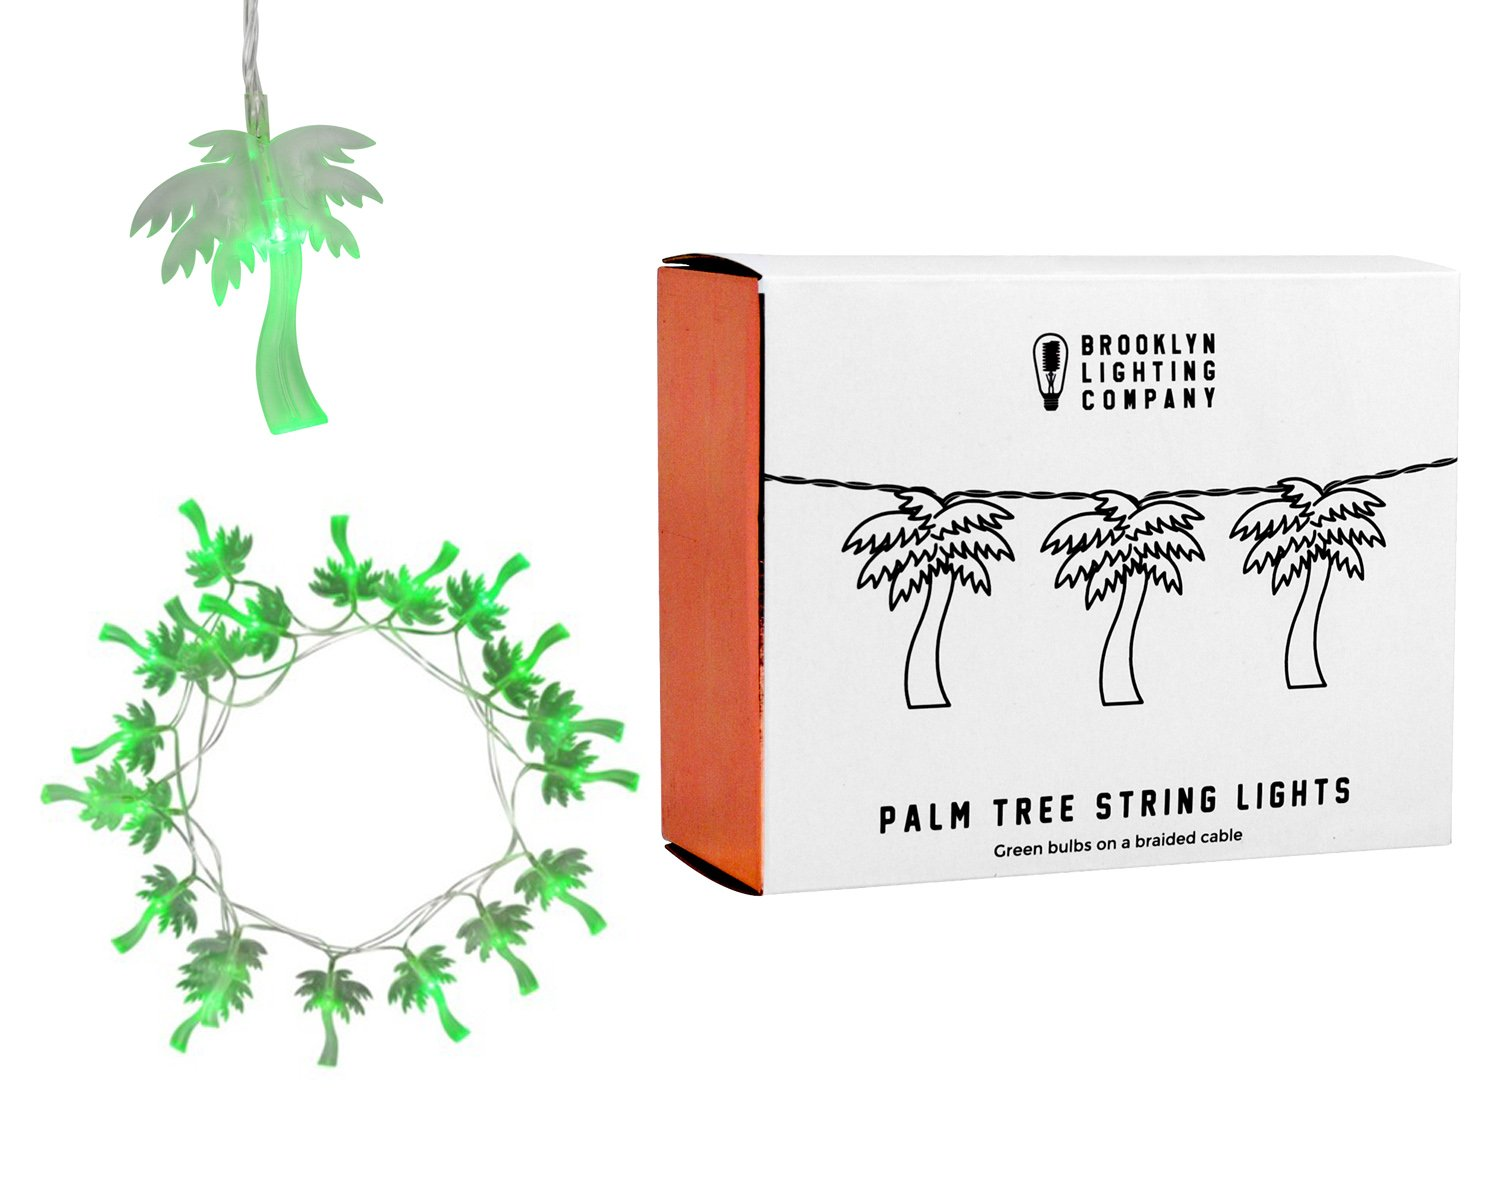 Brooklyn Lighting Company - 20 LED Palm Tree String Lights, Battery Operated String Lights, Party Decor Supplies for Indoor, 8 Feet Long by Brooklyn Lighting Company